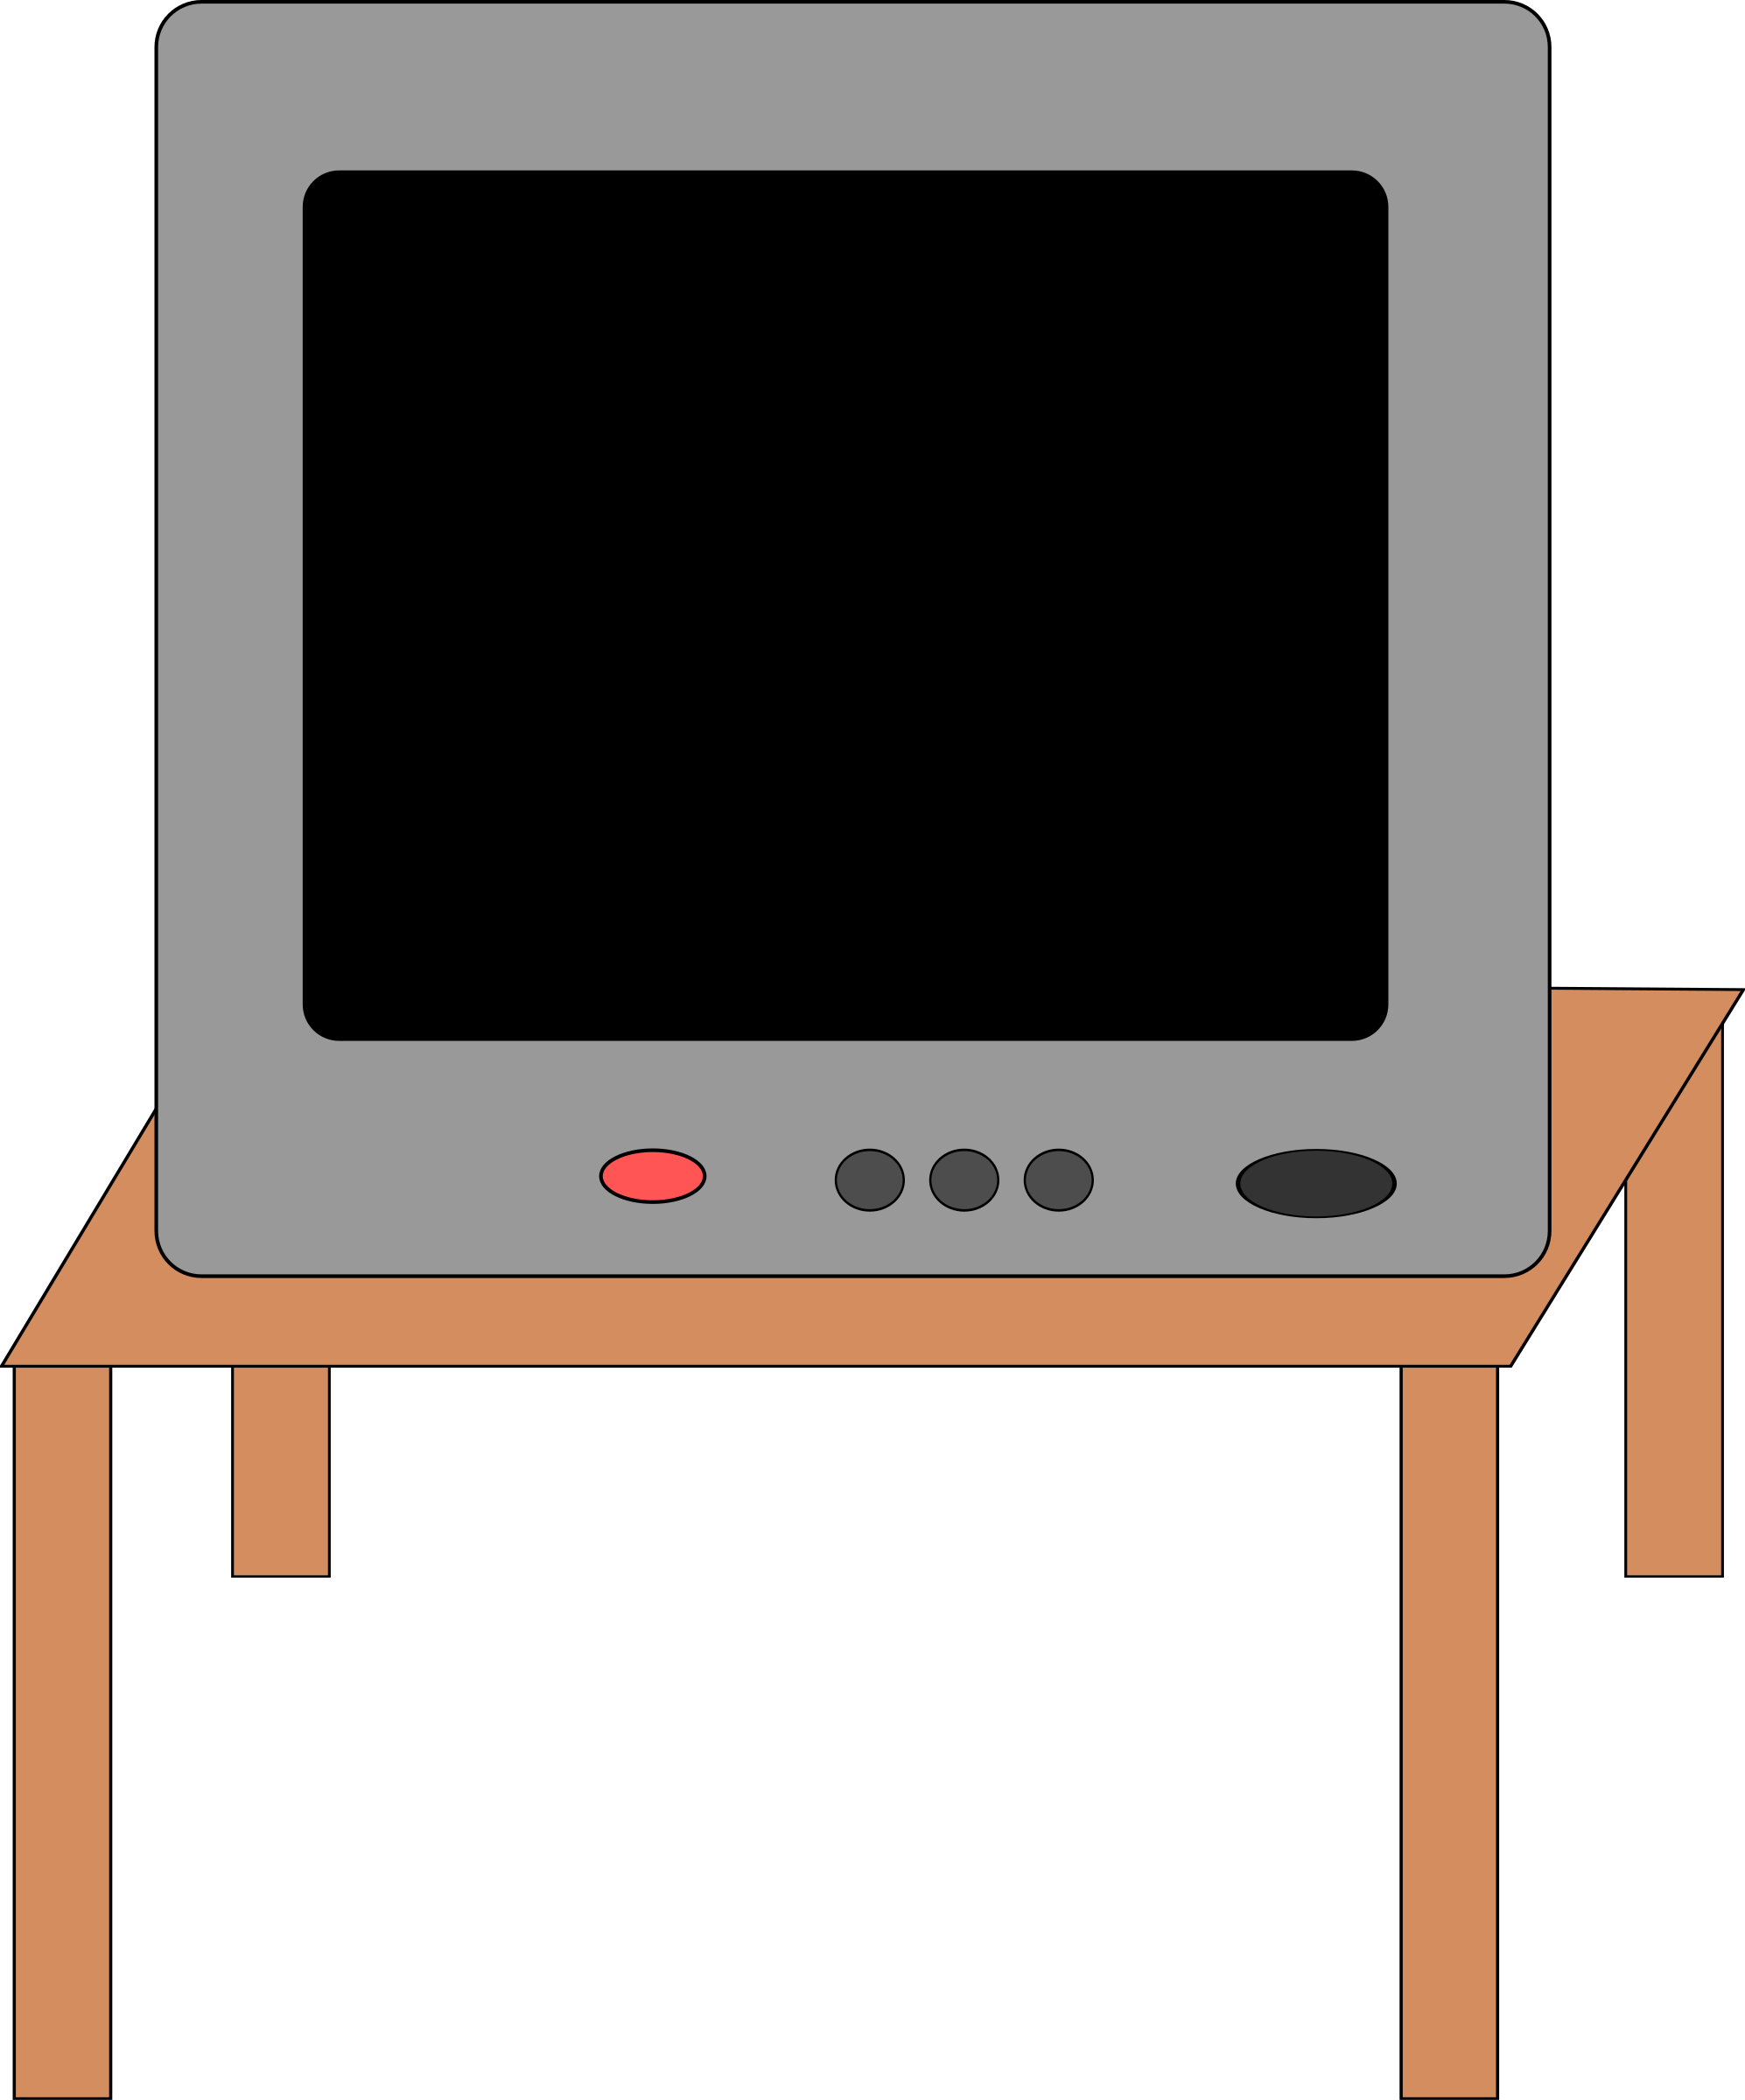 TV set 1 by Machovka